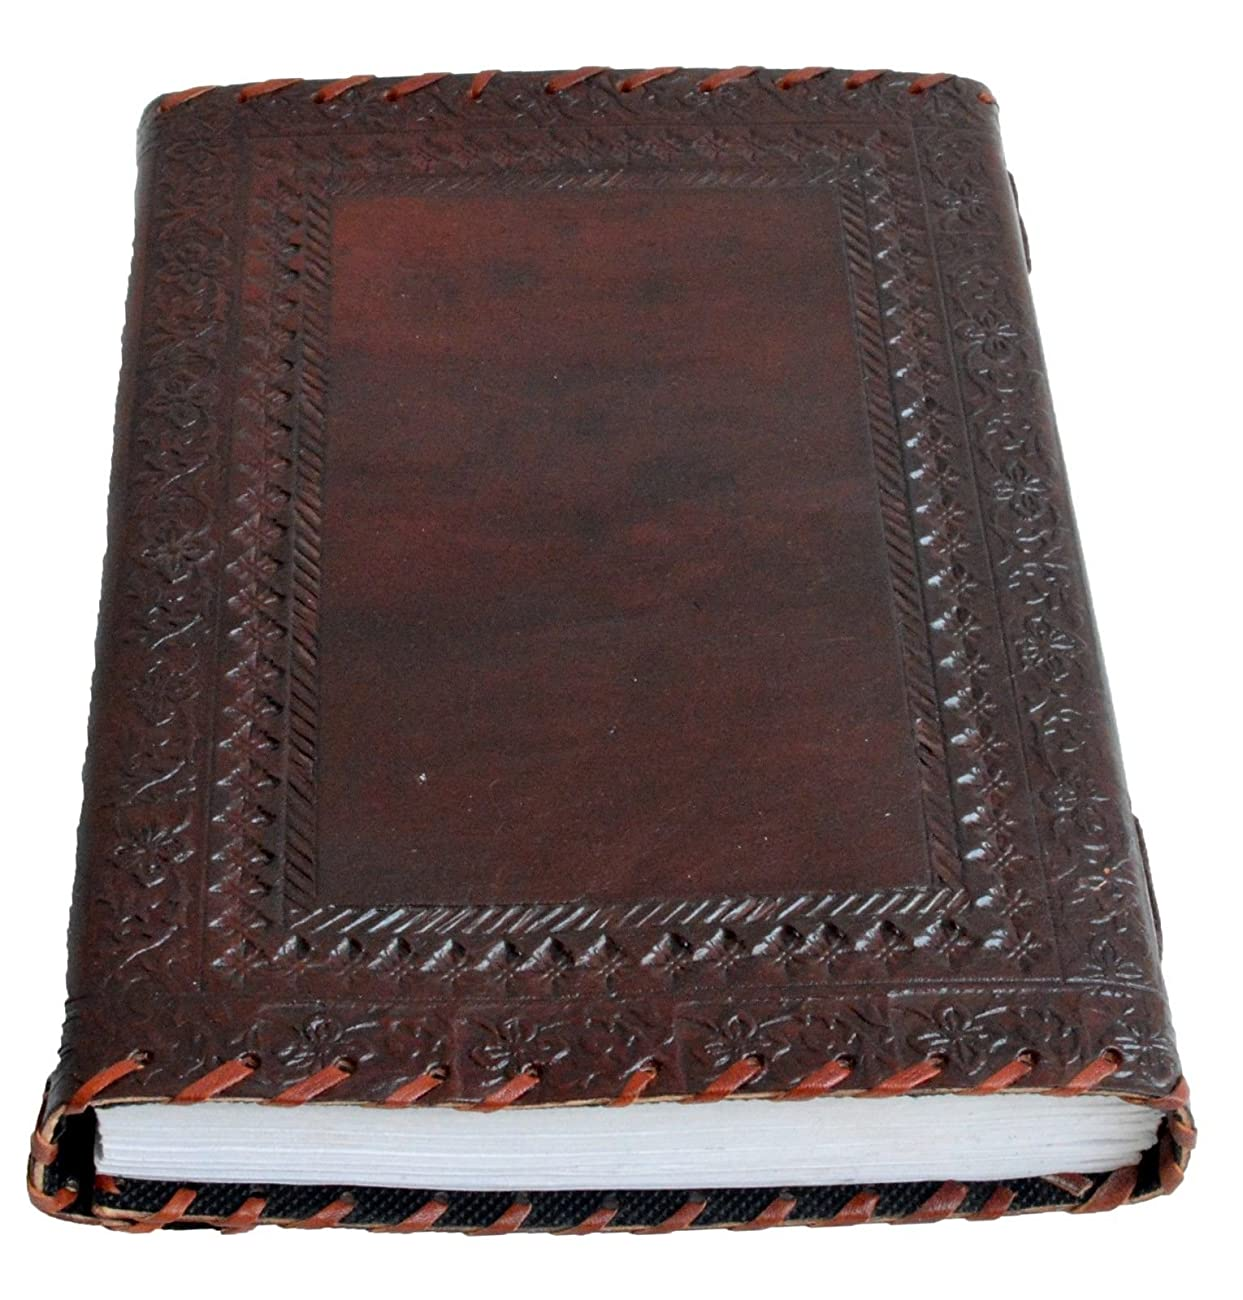 Genuine Leather Journal Vintage Antique Style Organizer Blank Notebook Secret Diary Daily Journal Personal Diary - Maroon 2